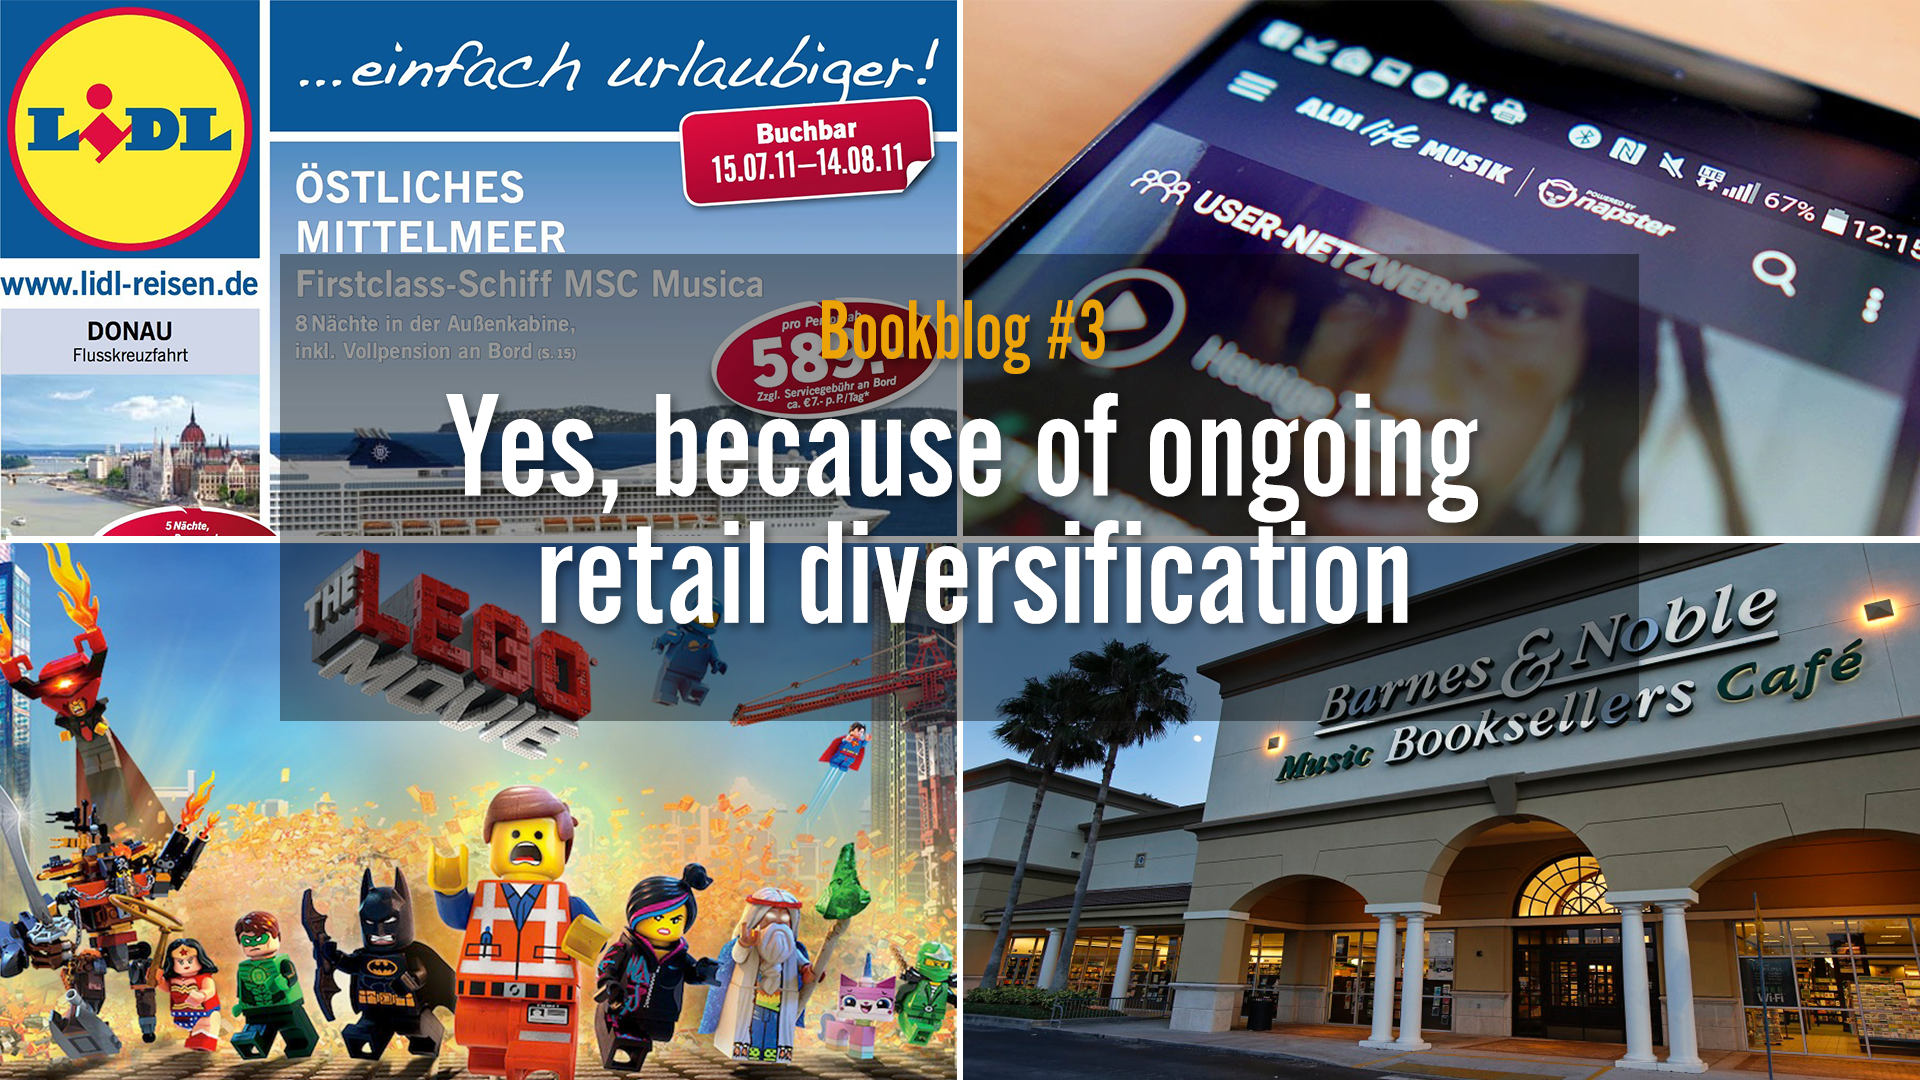 Diversity and mixed channels bring life to retailers